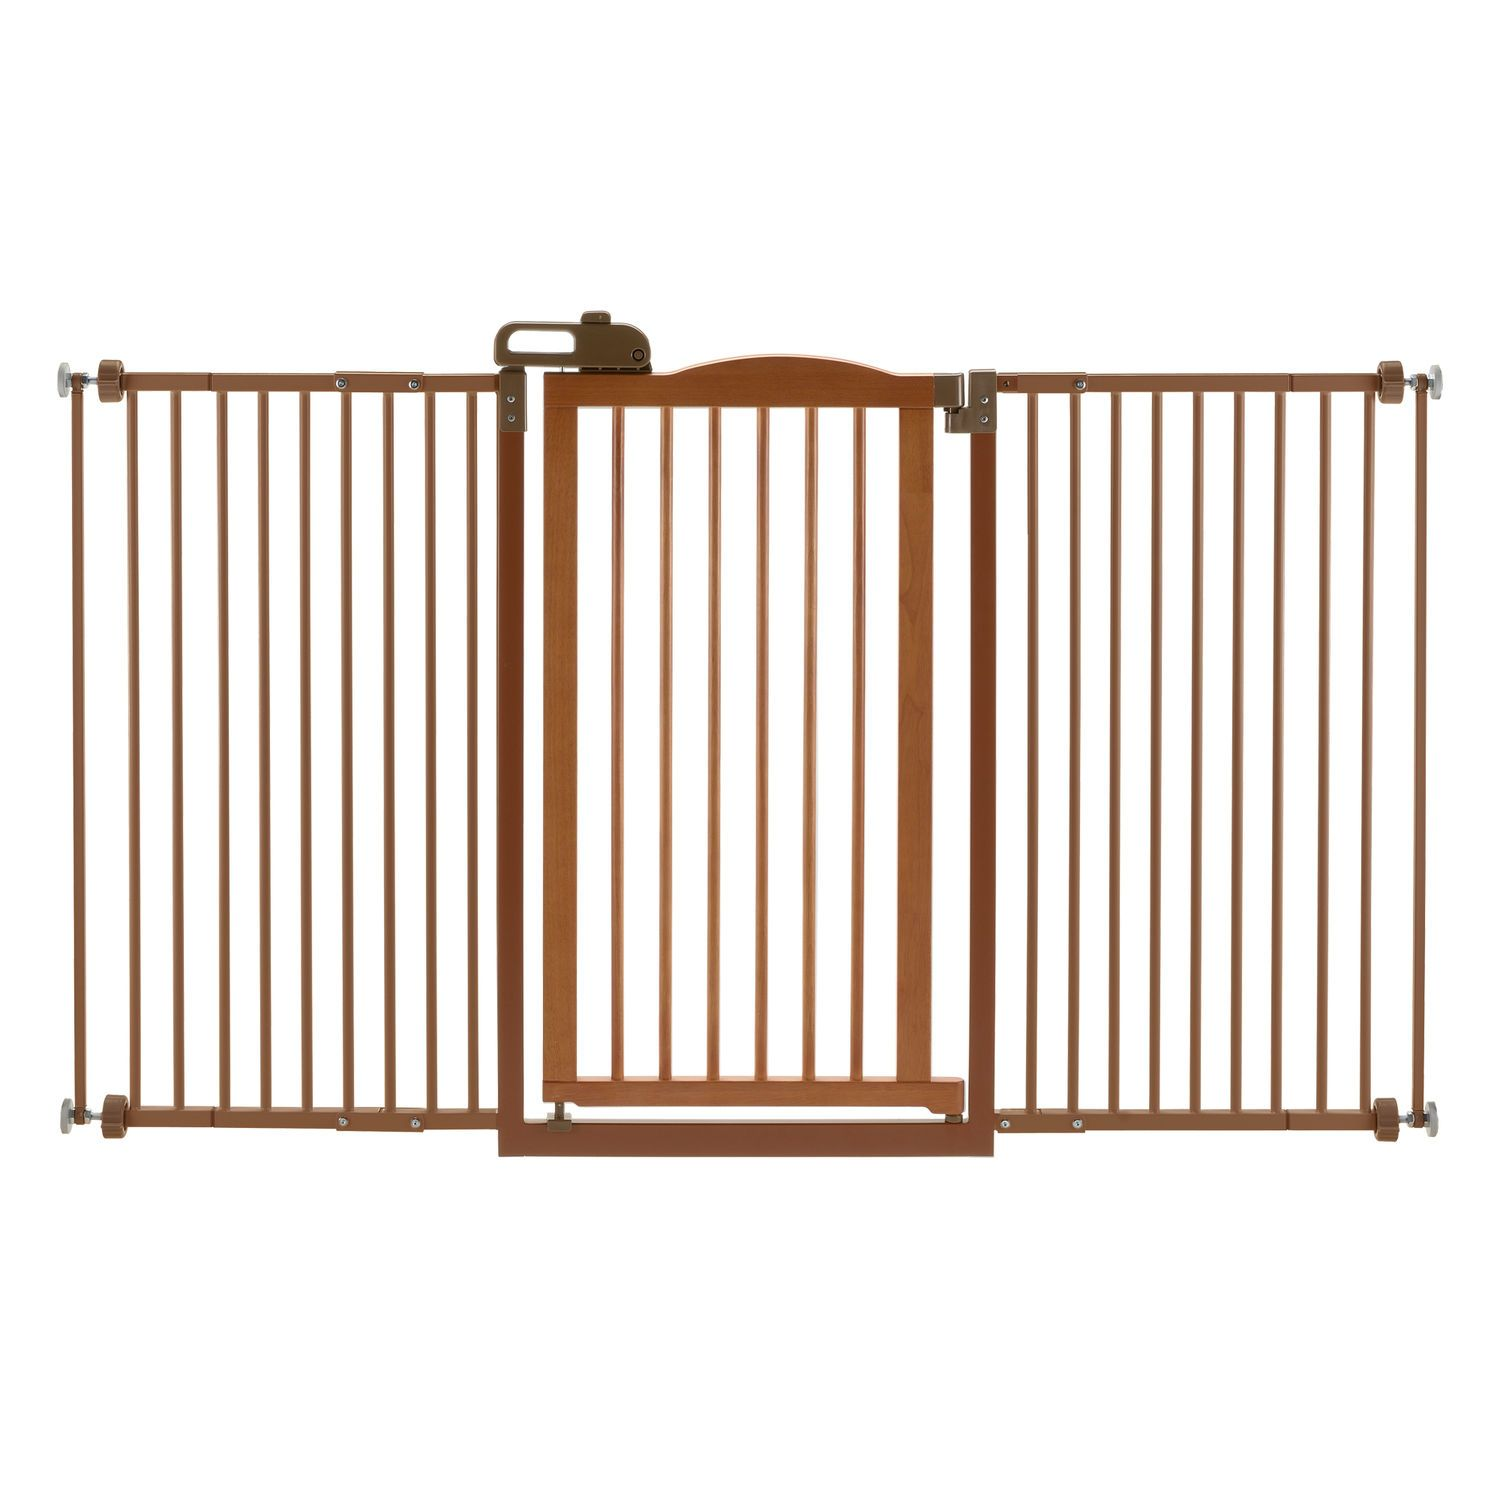 One-Touch Tall and Wide Pressure Mounted Pet Gate II Brown 32.1″ – 62.8″ x 2″ x 38.4″